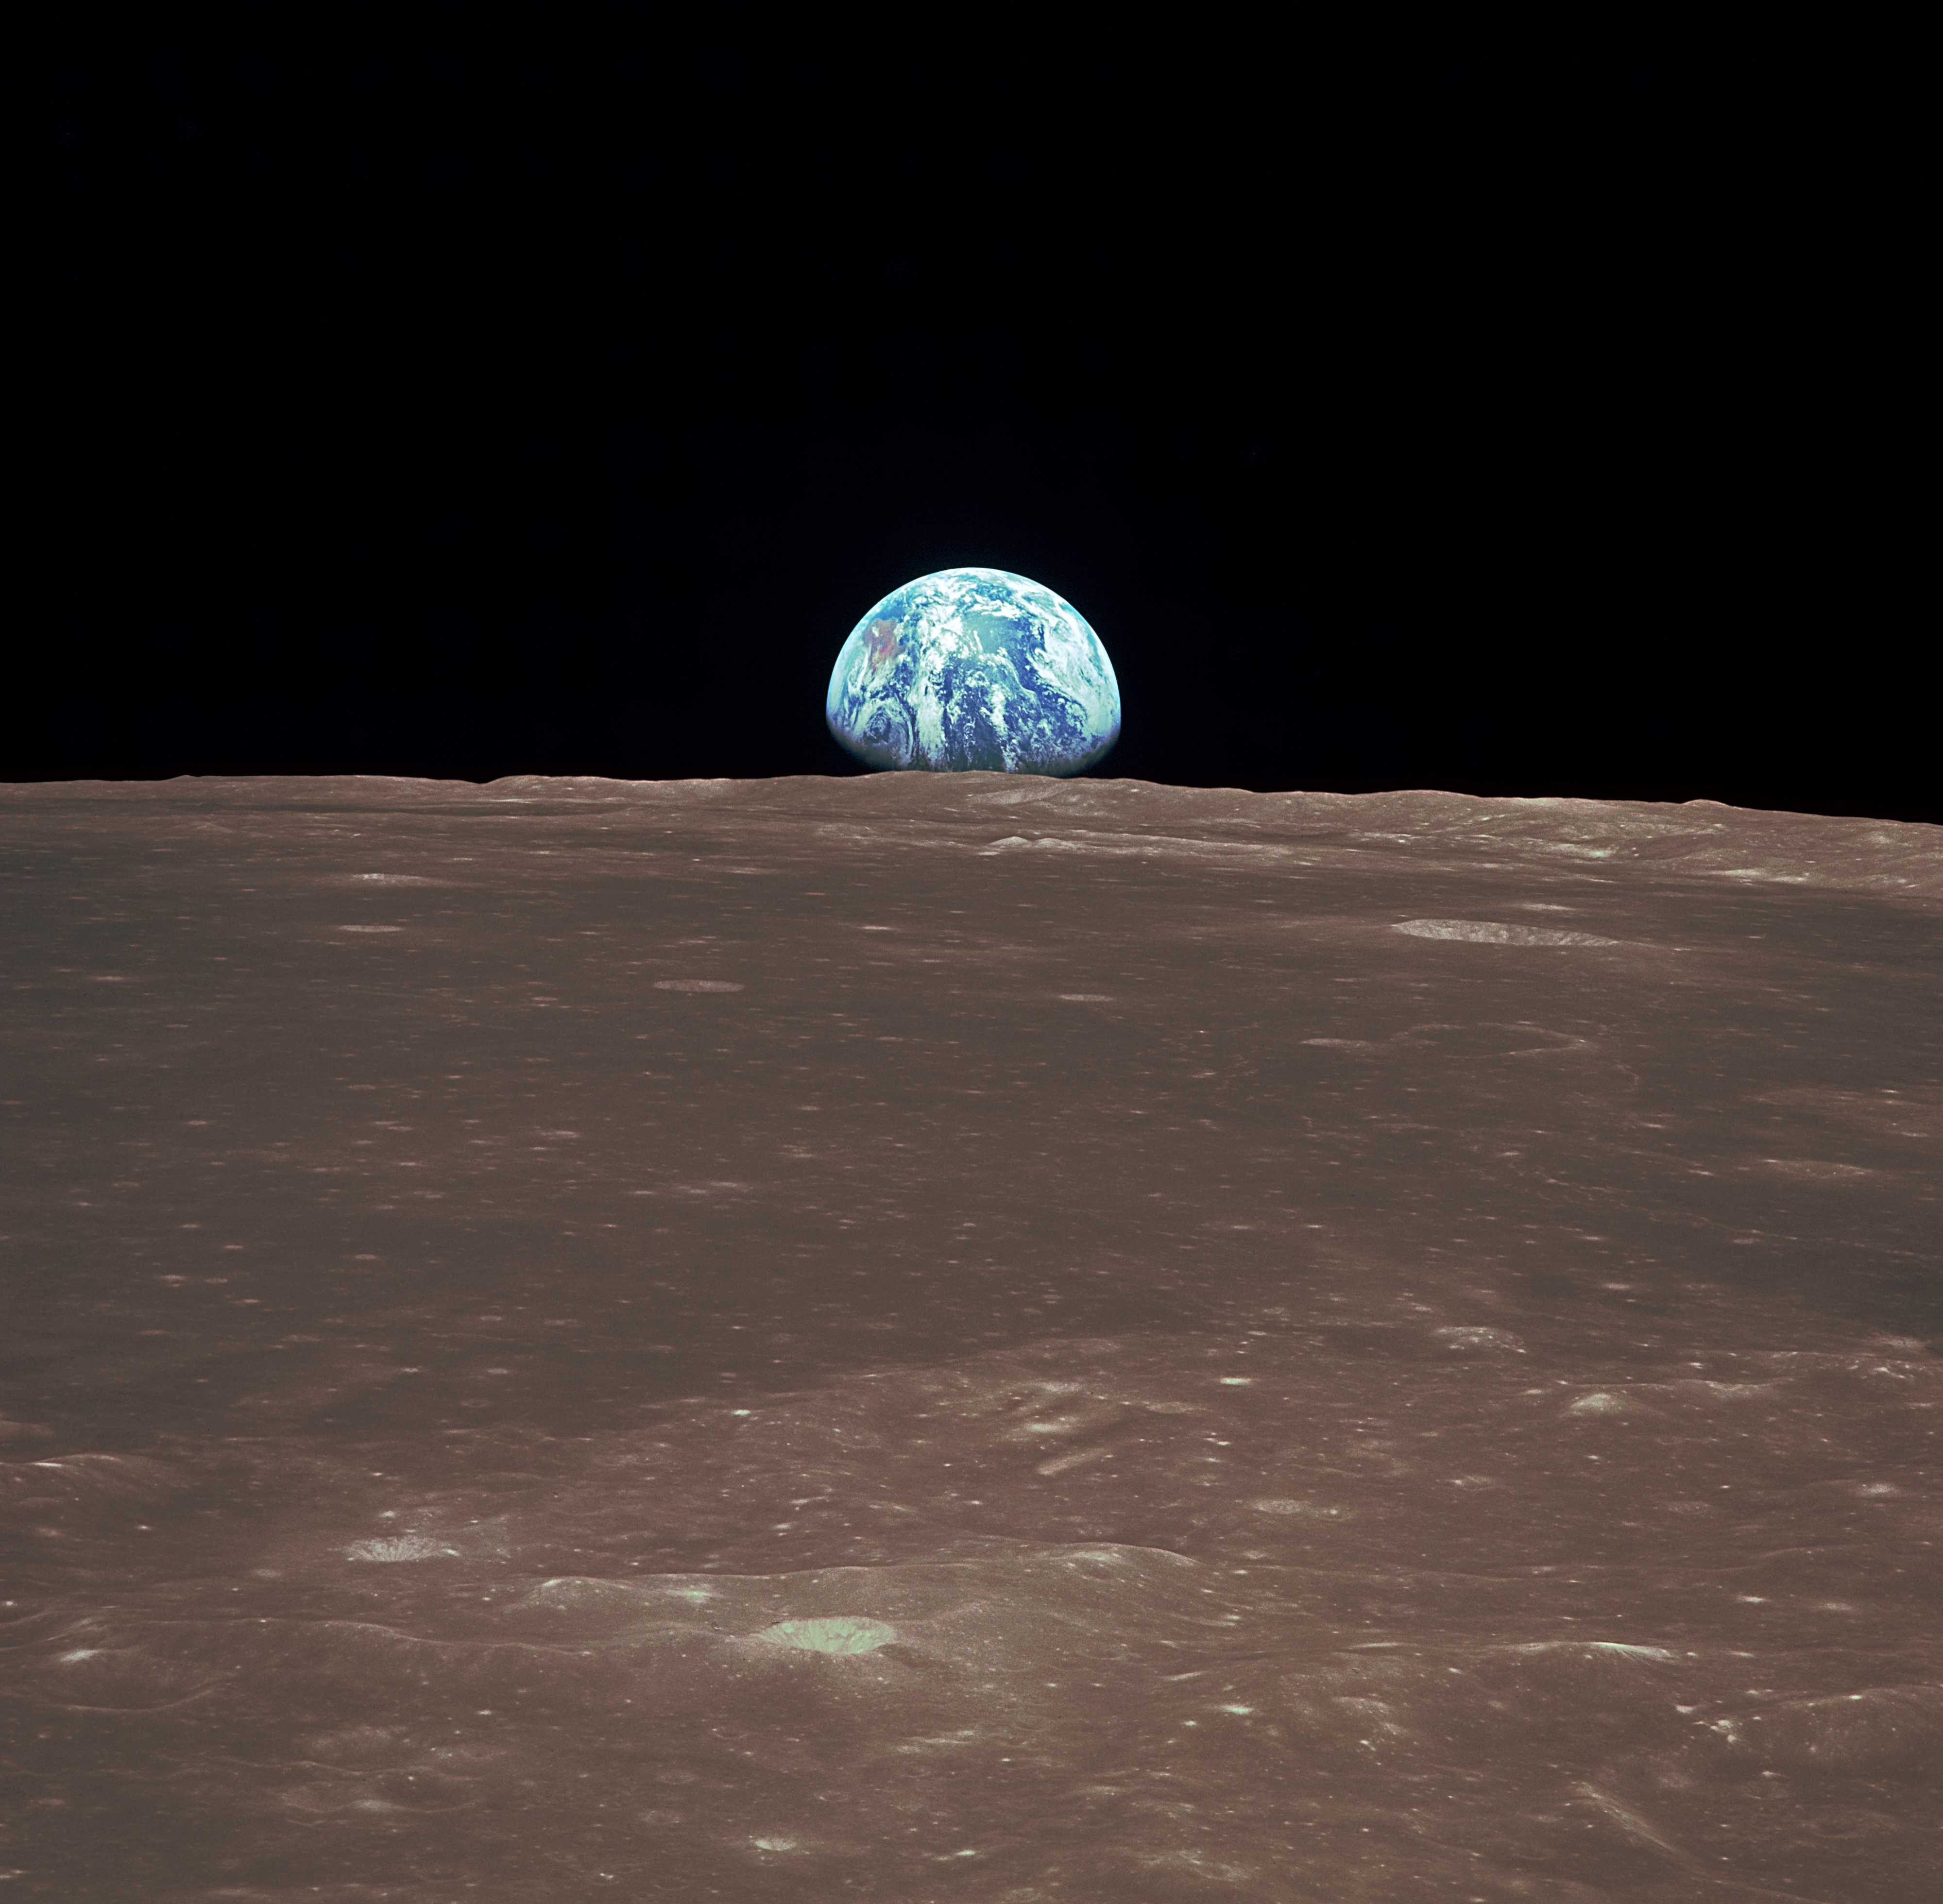 earth from moon apollo - photo #24